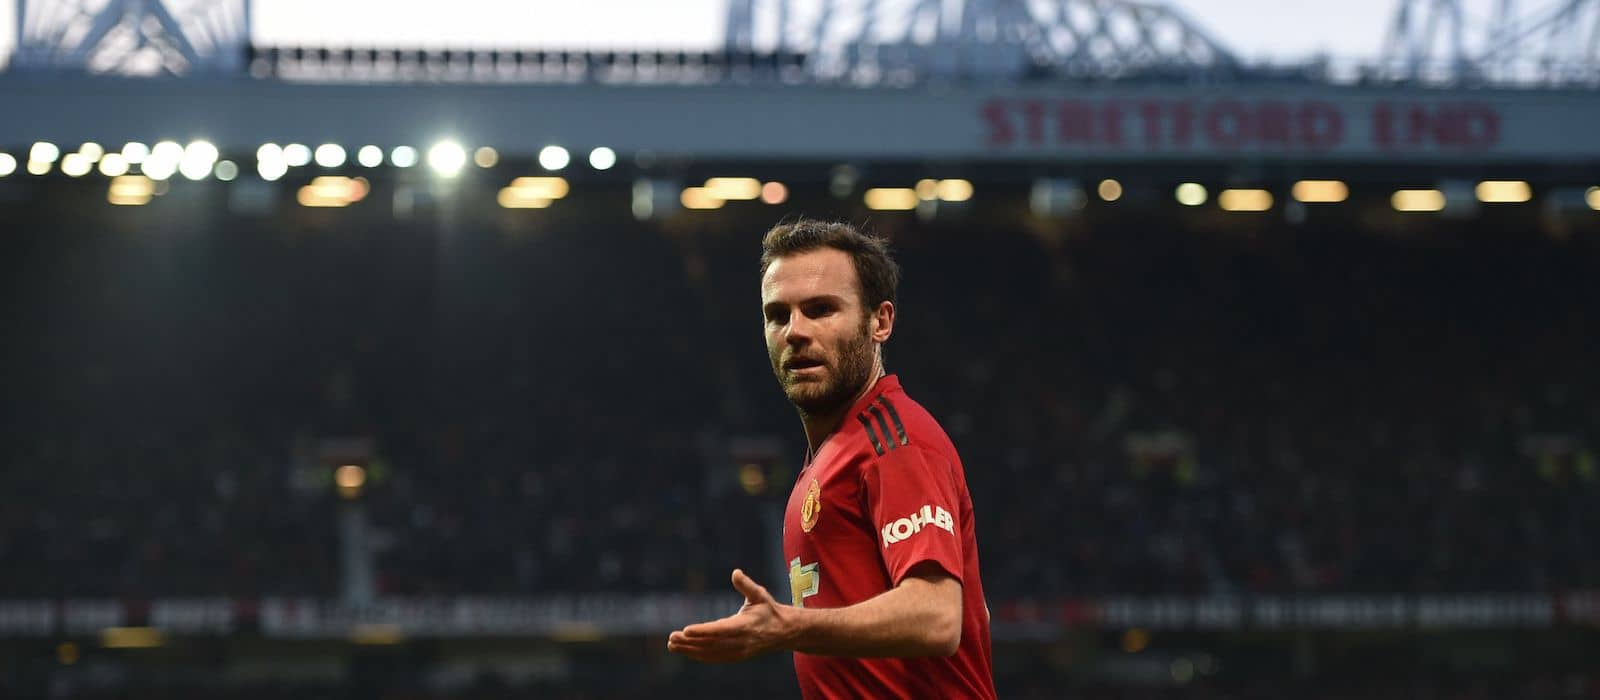 Juan Mata: There are reasons to be optimistic